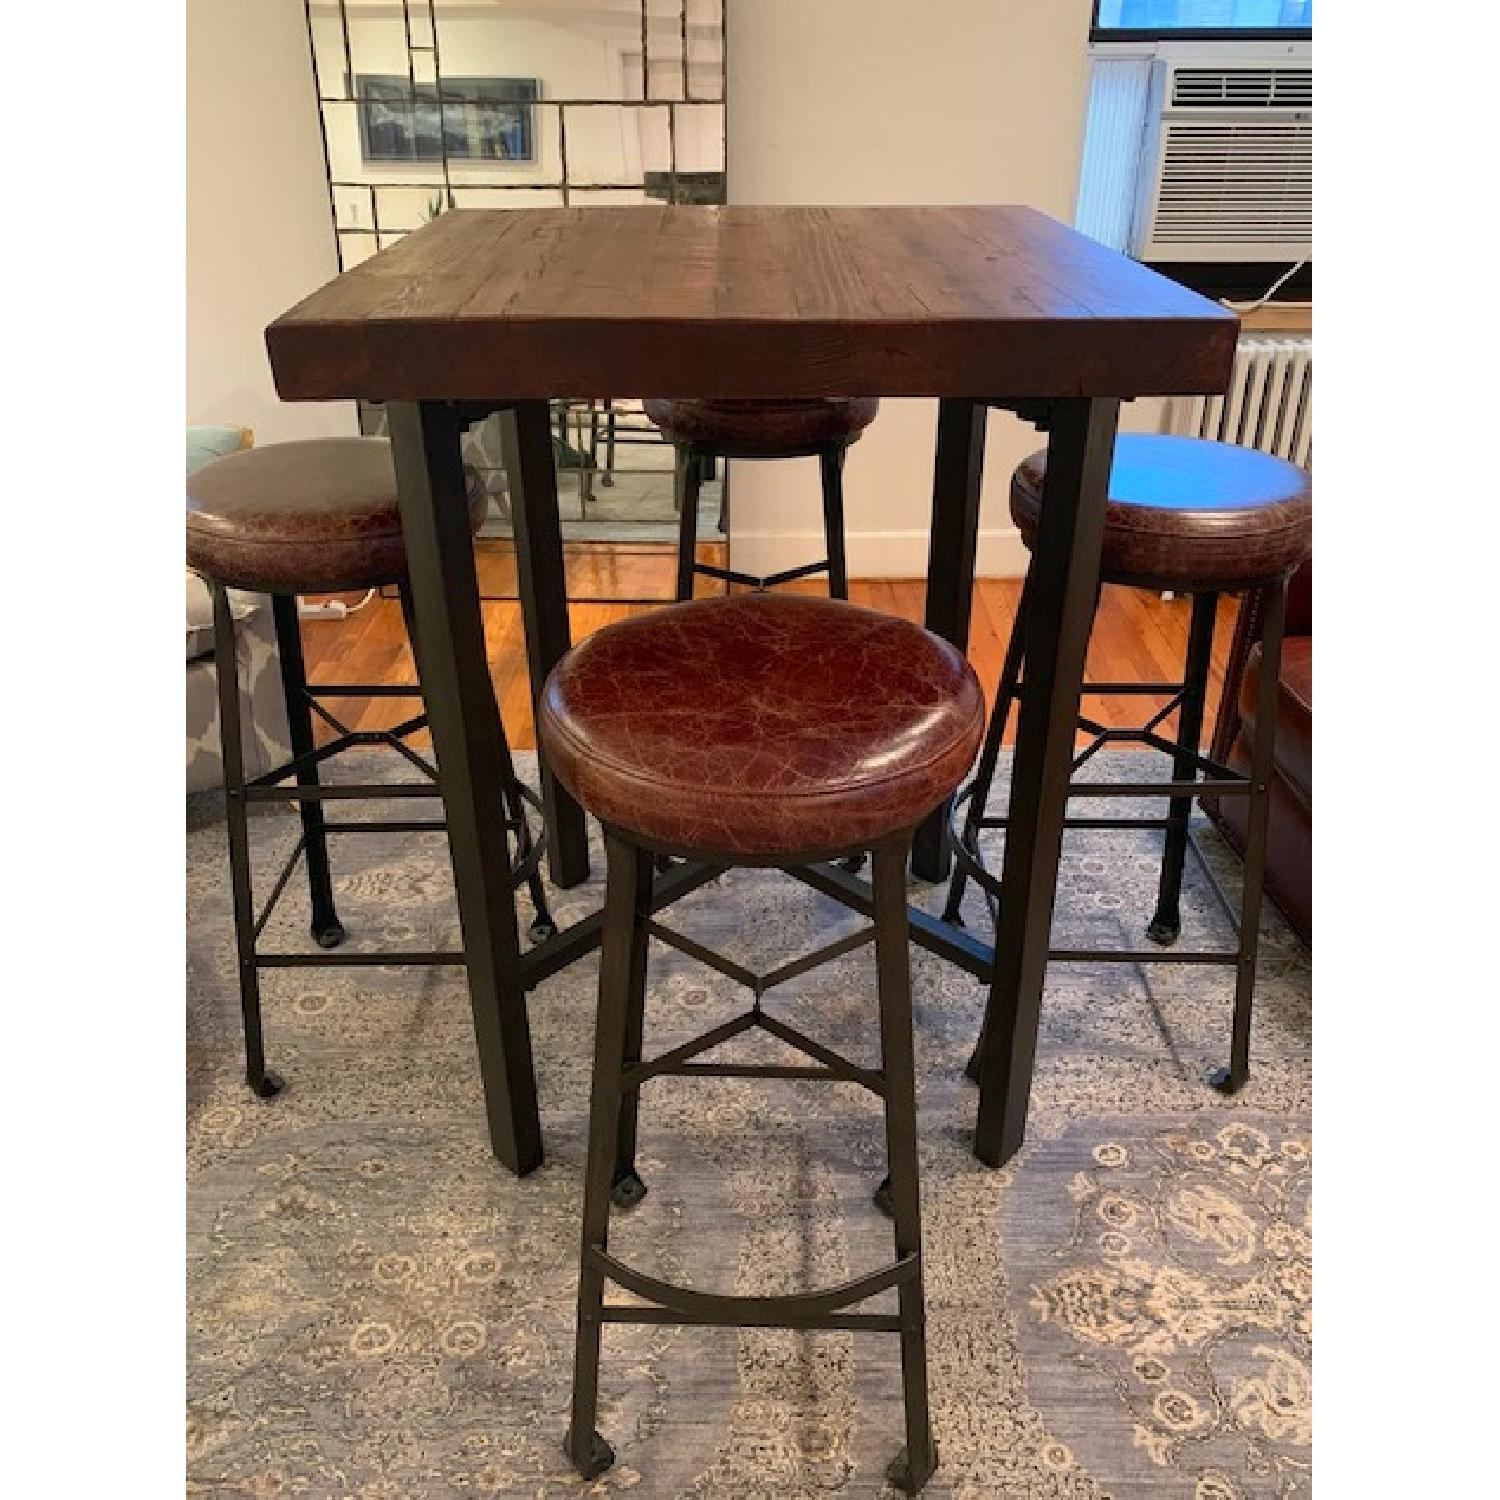 Pottery Barn Griffin Bar Table W/ 4 Stools – Aptdeco Inside Recent Griffin Reclaimed Wood Dining Tables (View 21 of 25)